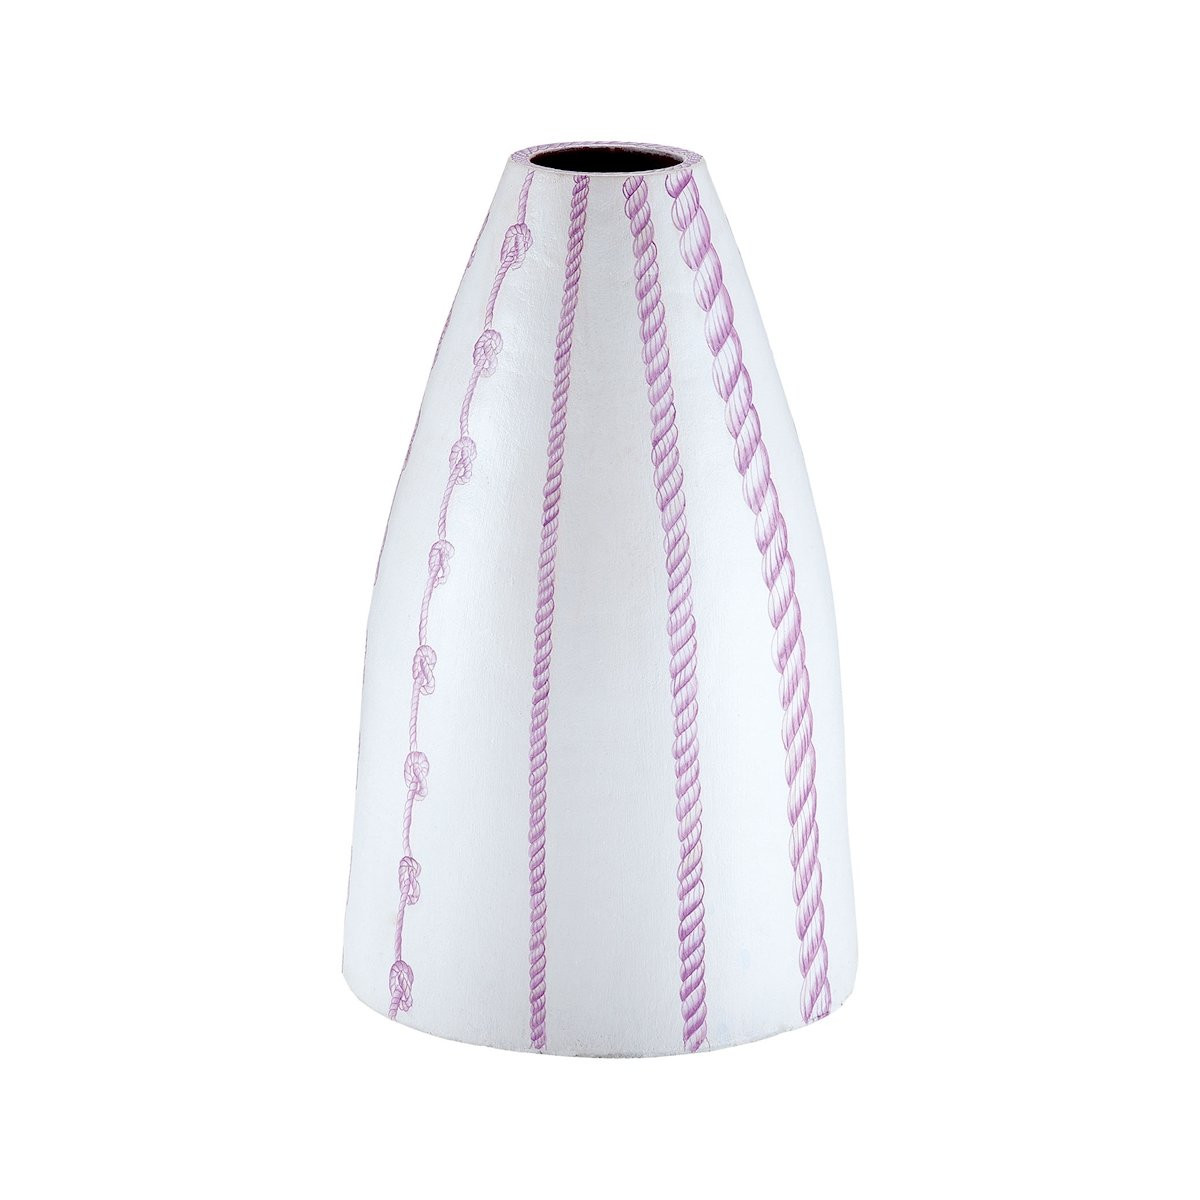 vase with rope decoration of radiant orchid ropes vase products with regard to radiant orchid ropes vase